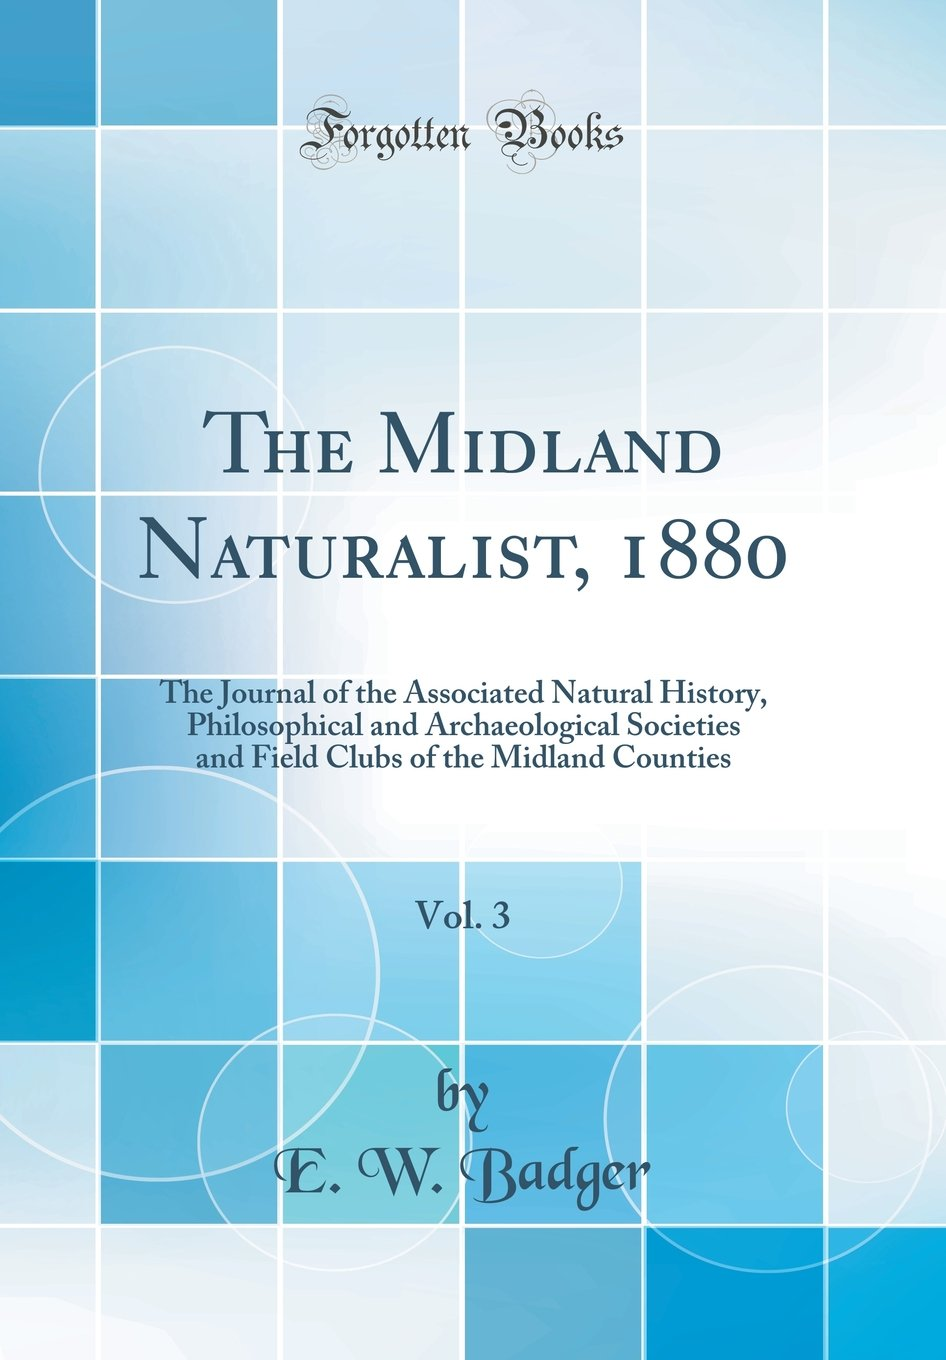 Download The Midland Naturalist, 1880, Vol. 3: The Journal of the Associated Natural History, Philosophical and Archaeological Societies and Field Clubs of the Midland Counties (Classic Reprint) pdf